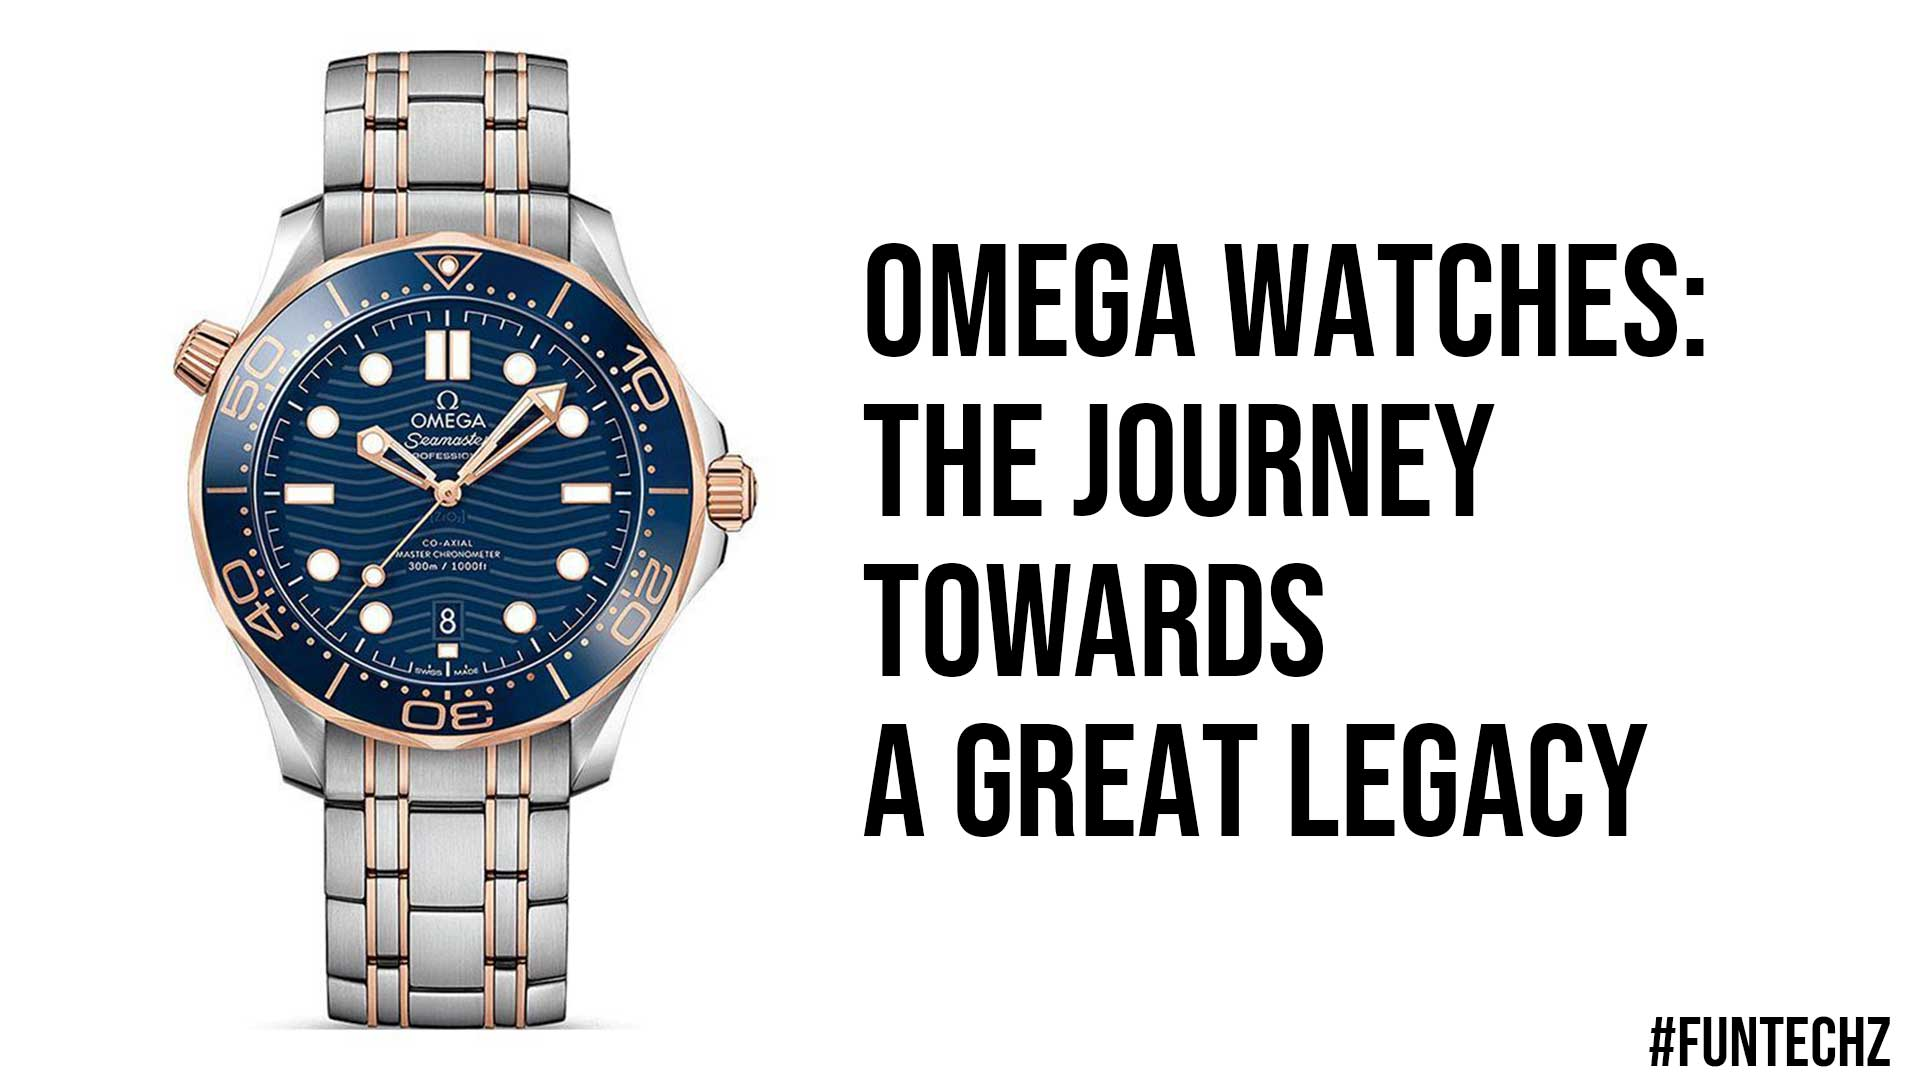 Omega Watches The Journey Towards a Great Legacy